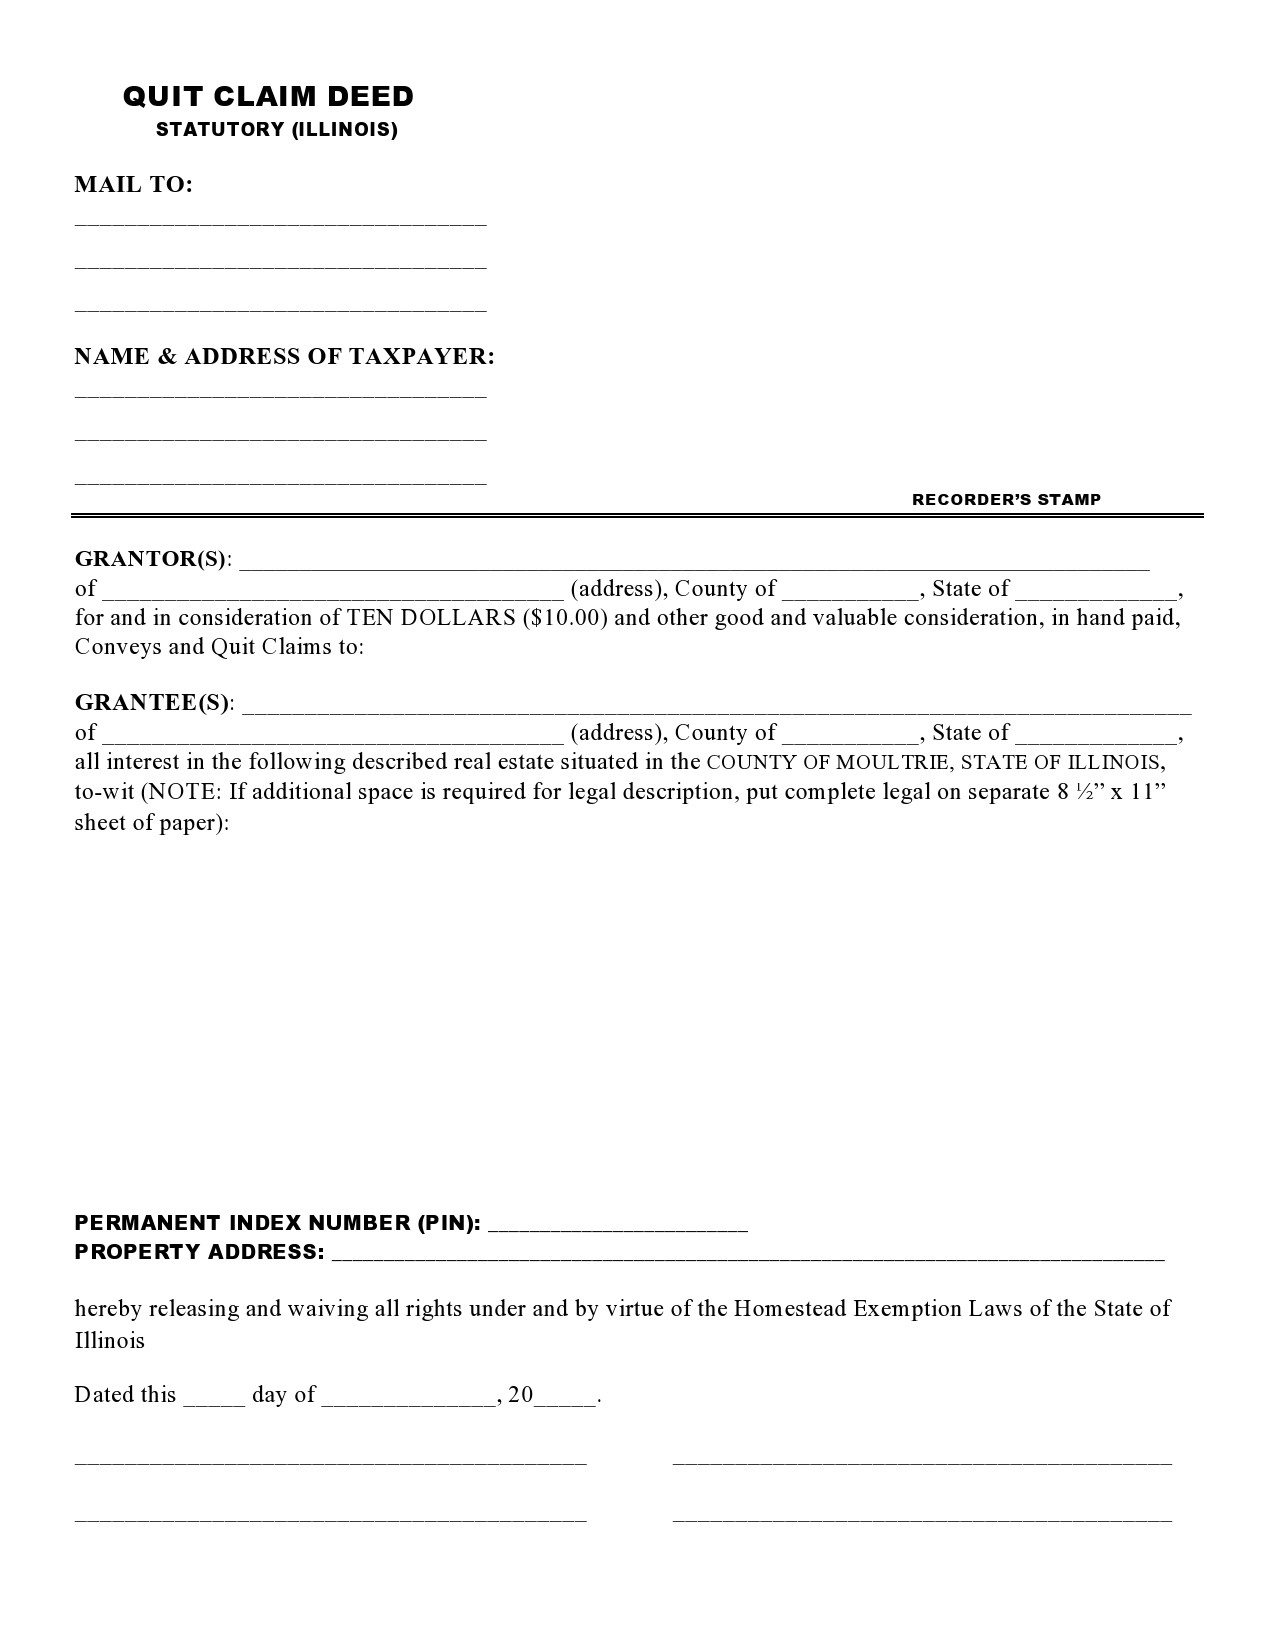 Free quit claim deed form 11